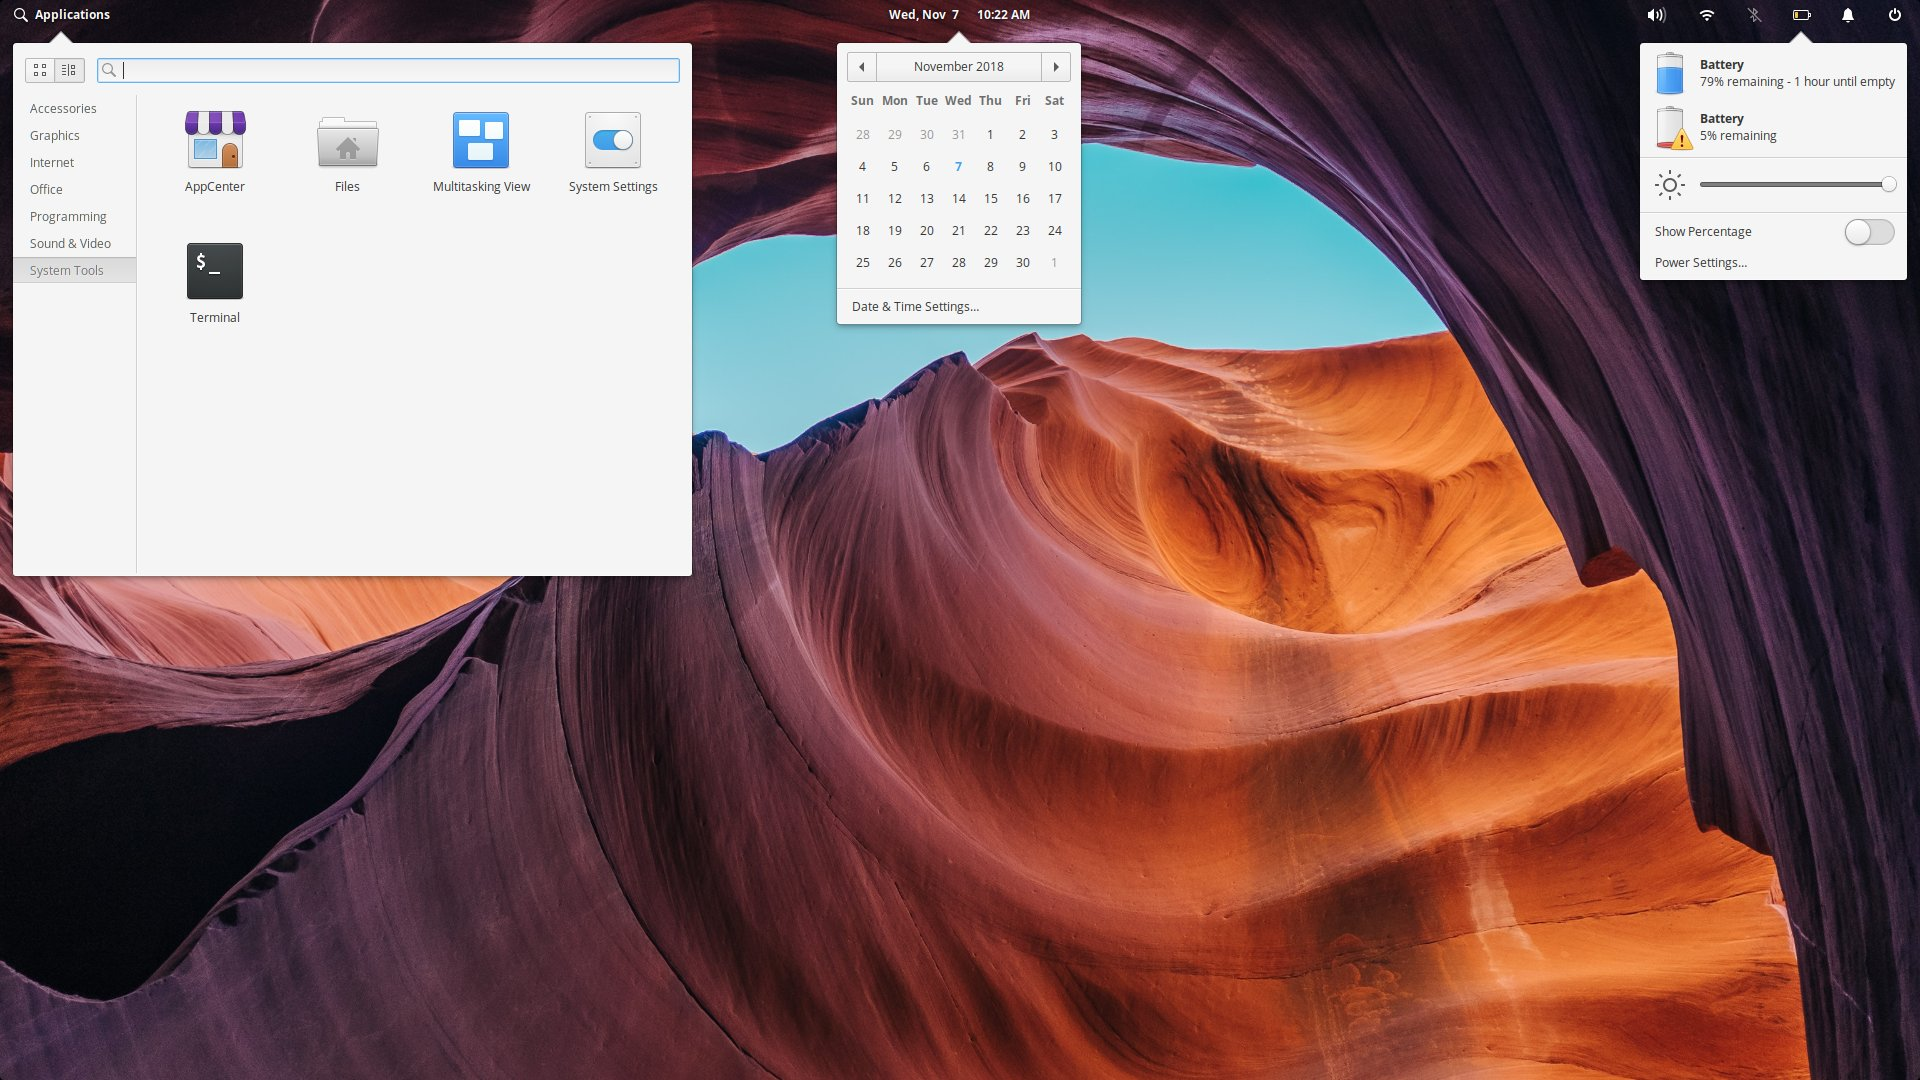 Composite screenshot of some of the top bar menus in elementary OS Juno.